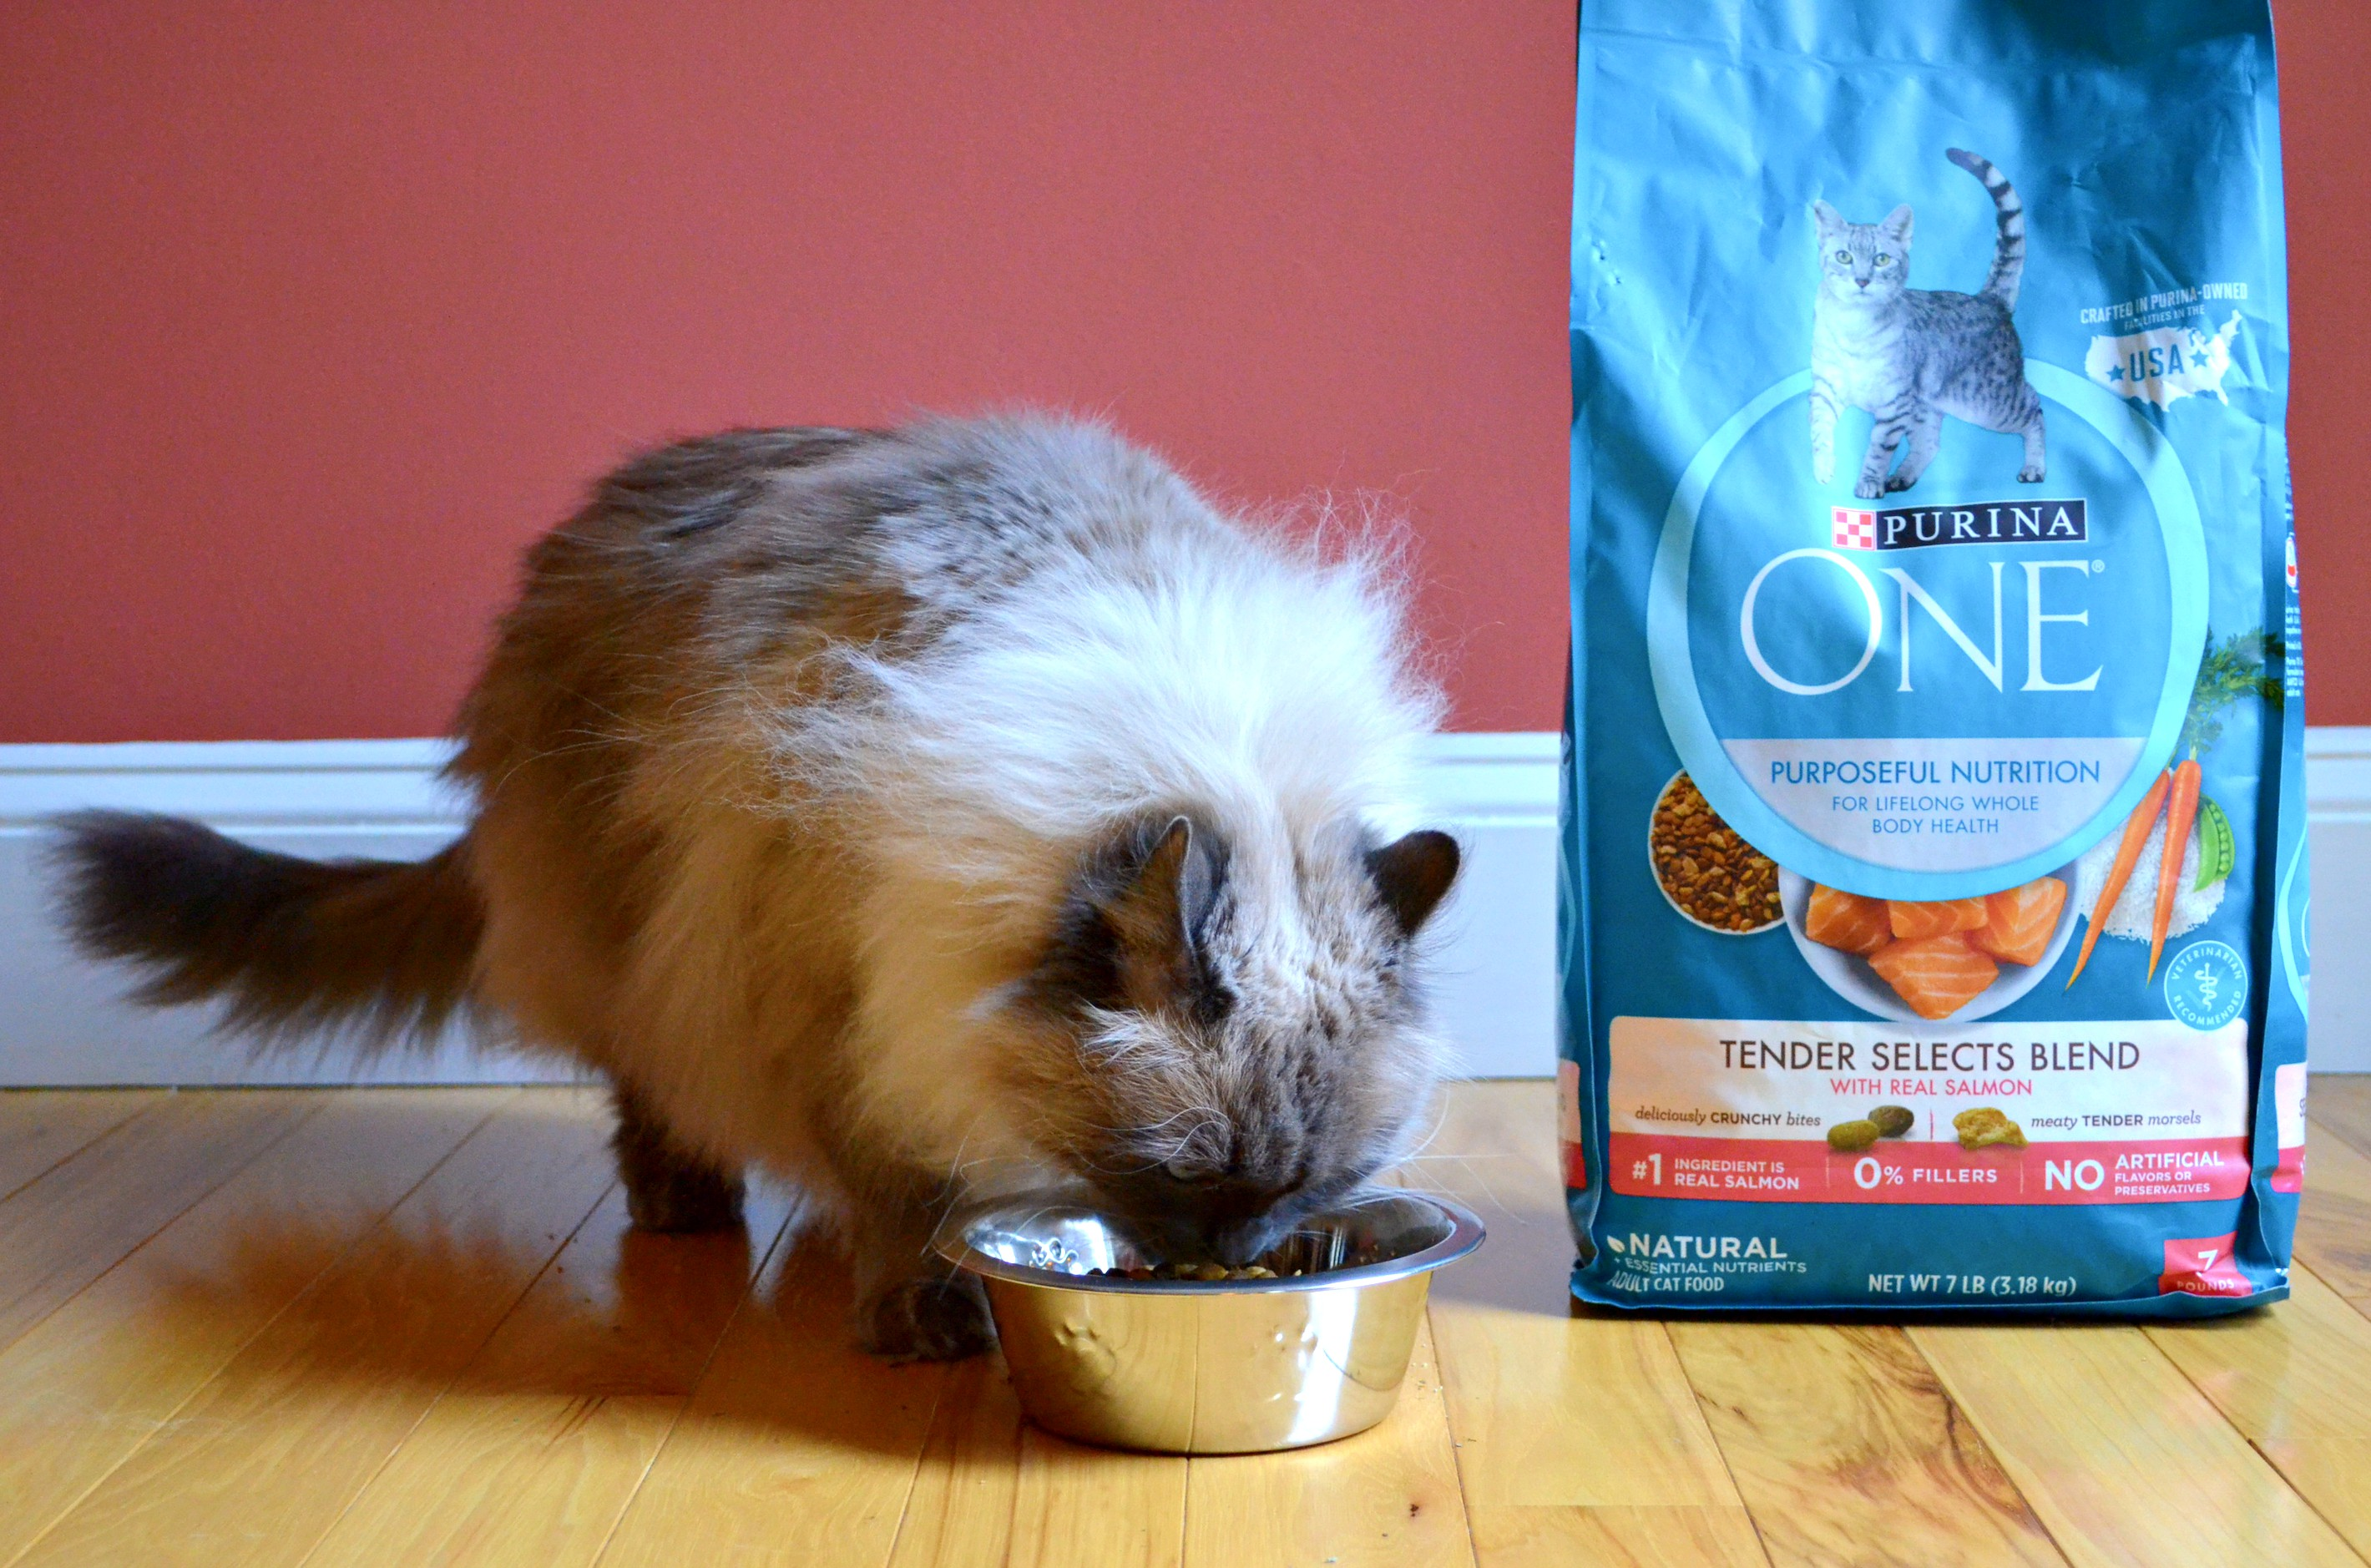 a cat eating Purina ONE dry cat food